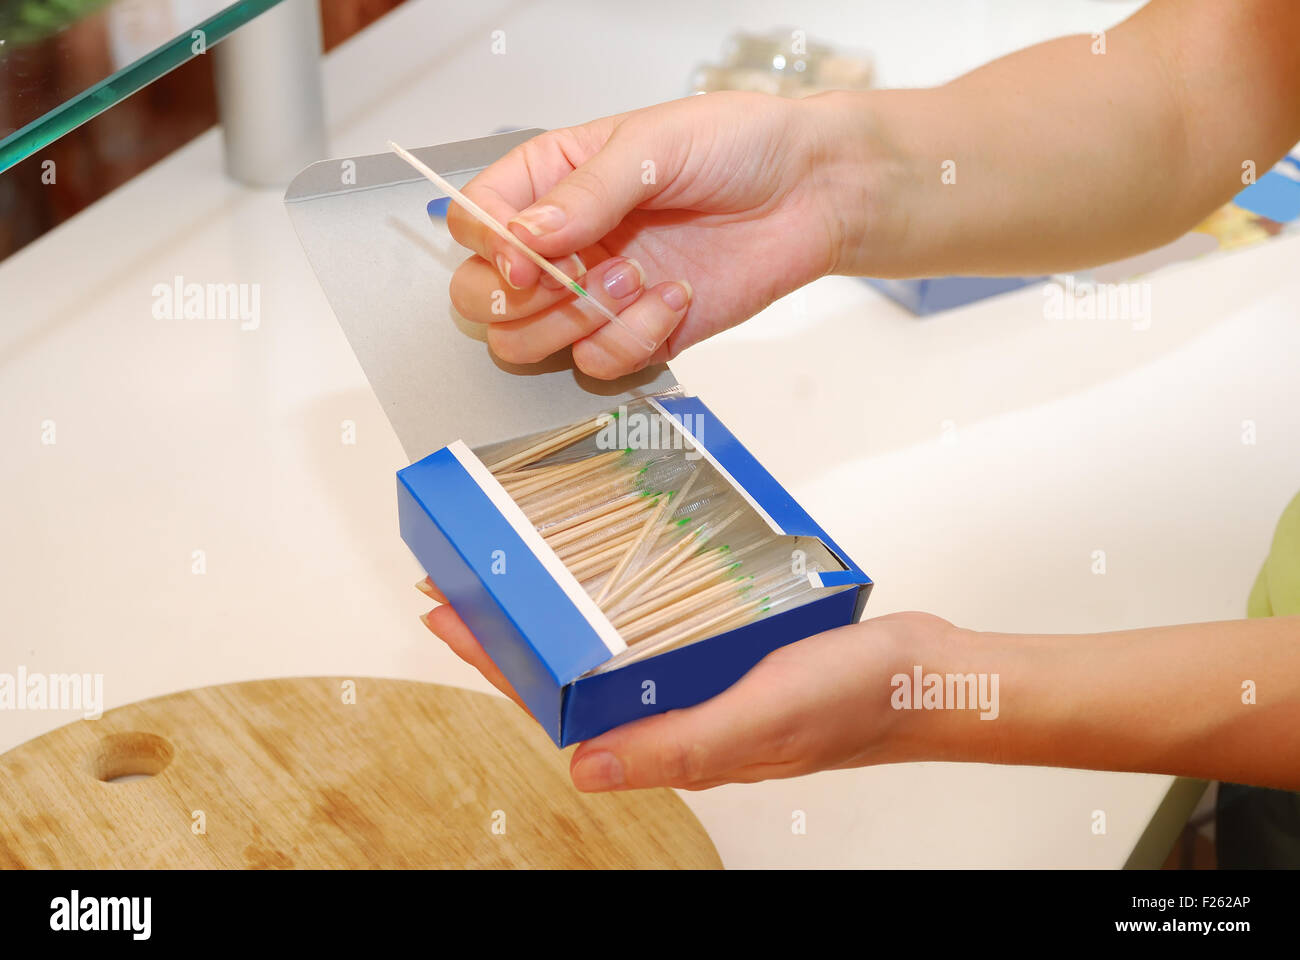 hands showing how to use toothpicks in box - Stock Image